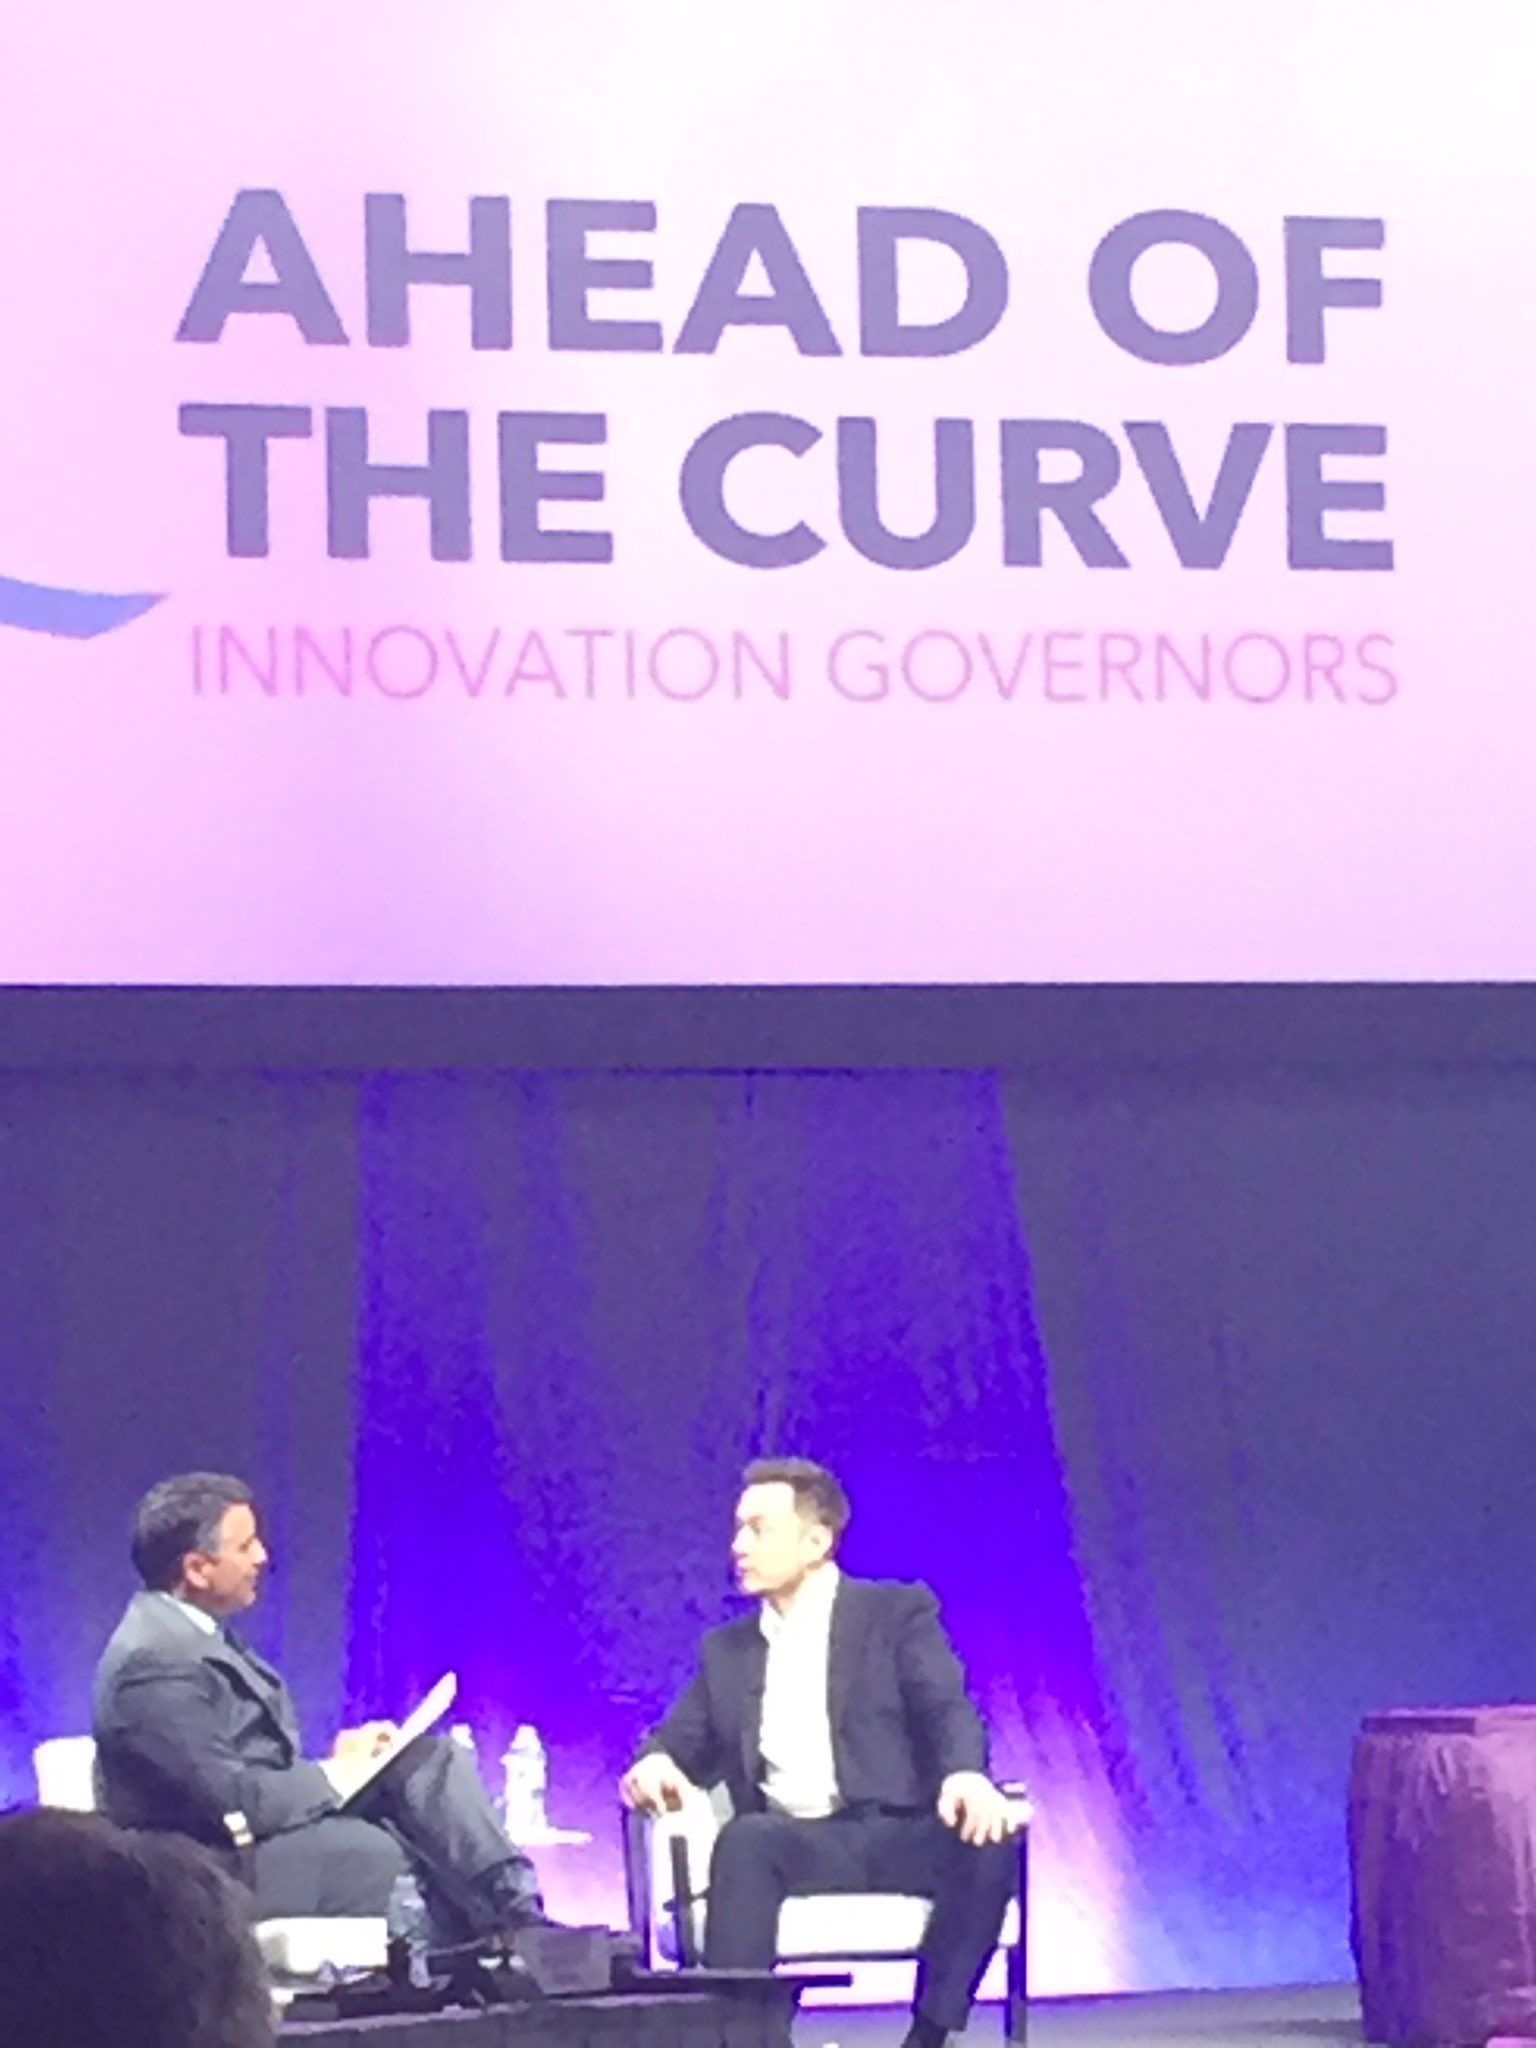 NV Gov @BrianSandoval discusses how to make life multi planetary and keep ahead of the curve with @elonmusk at @NatlGovsAssoc mtg https://t.co/kHgnX6PPBY